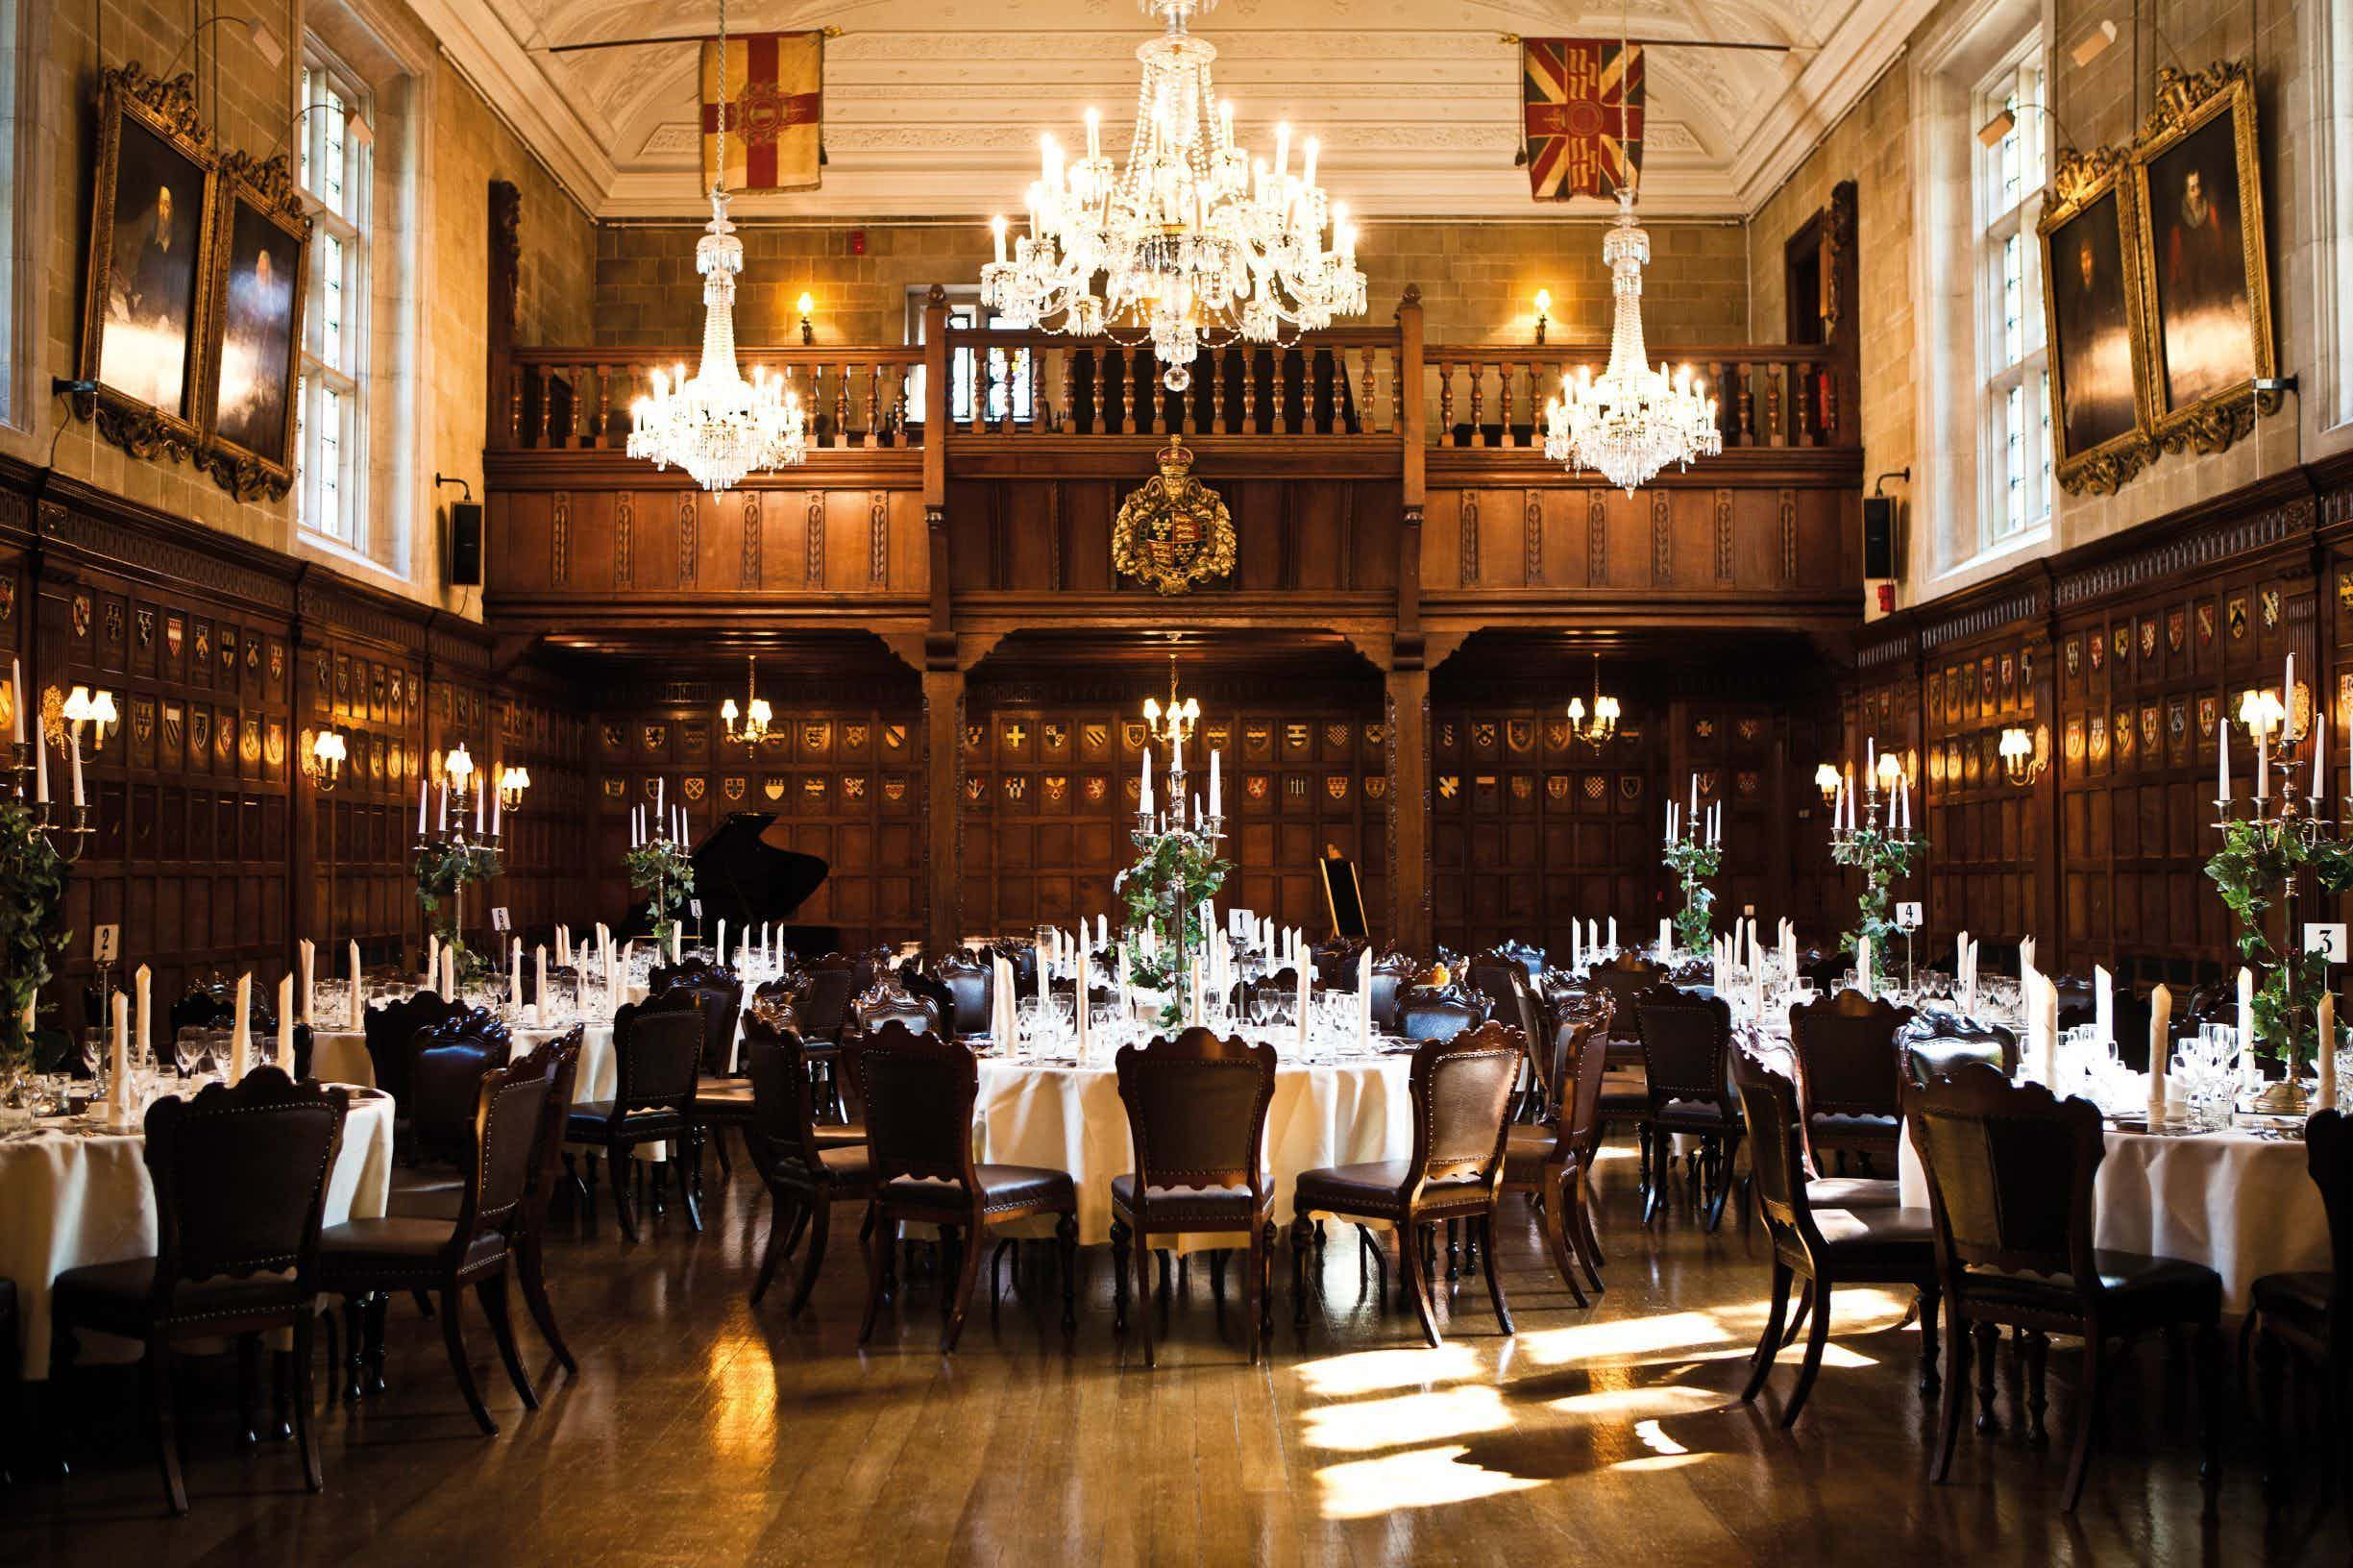 the Banqueting Hall, Ironmongers' Hall